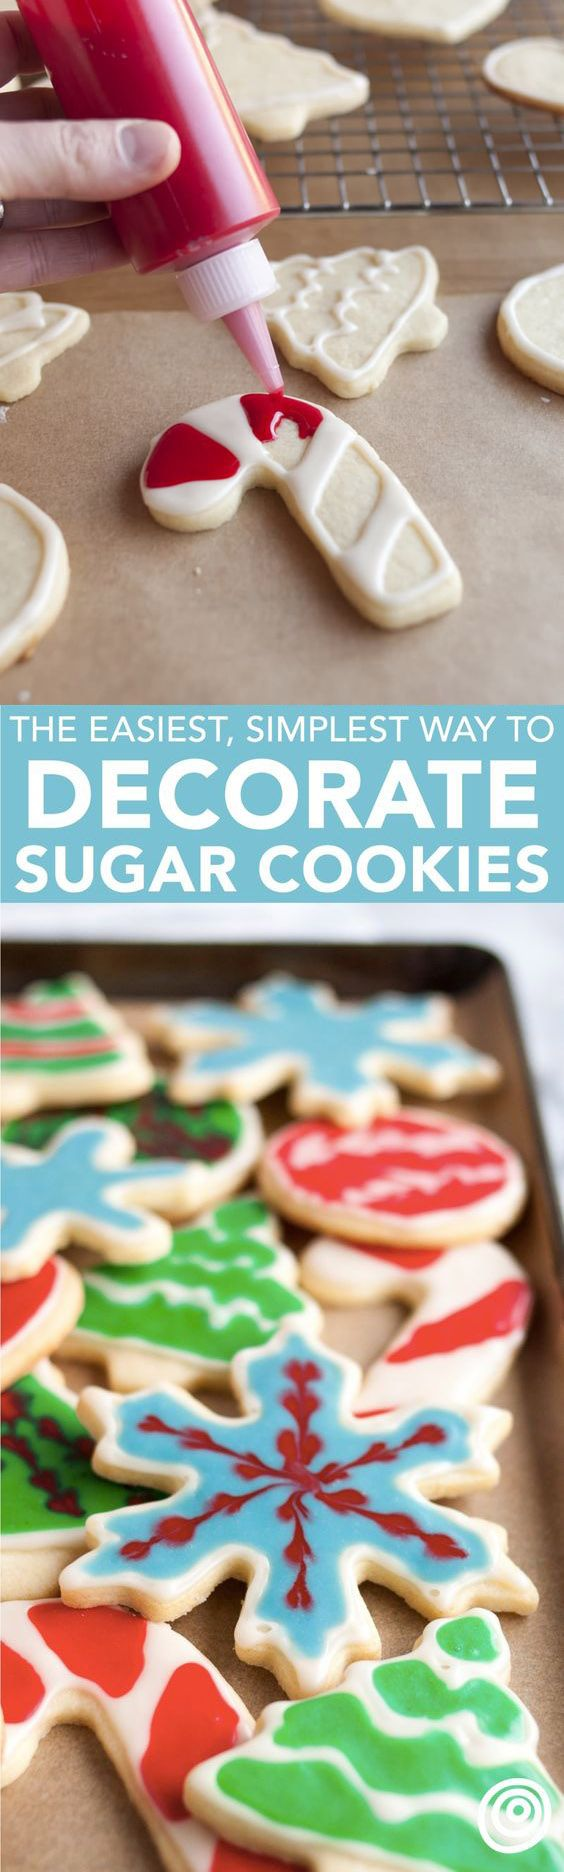 How to Decorate Sugar Cookies with Flood Icing: The Easiest, Simplest Method (with a Video!). This is one of those tutorials everyone needs to see for decorating their favorite cookie with frosting. Great ideas and recipe for Christmas, Halloween, Easter - any holidays!